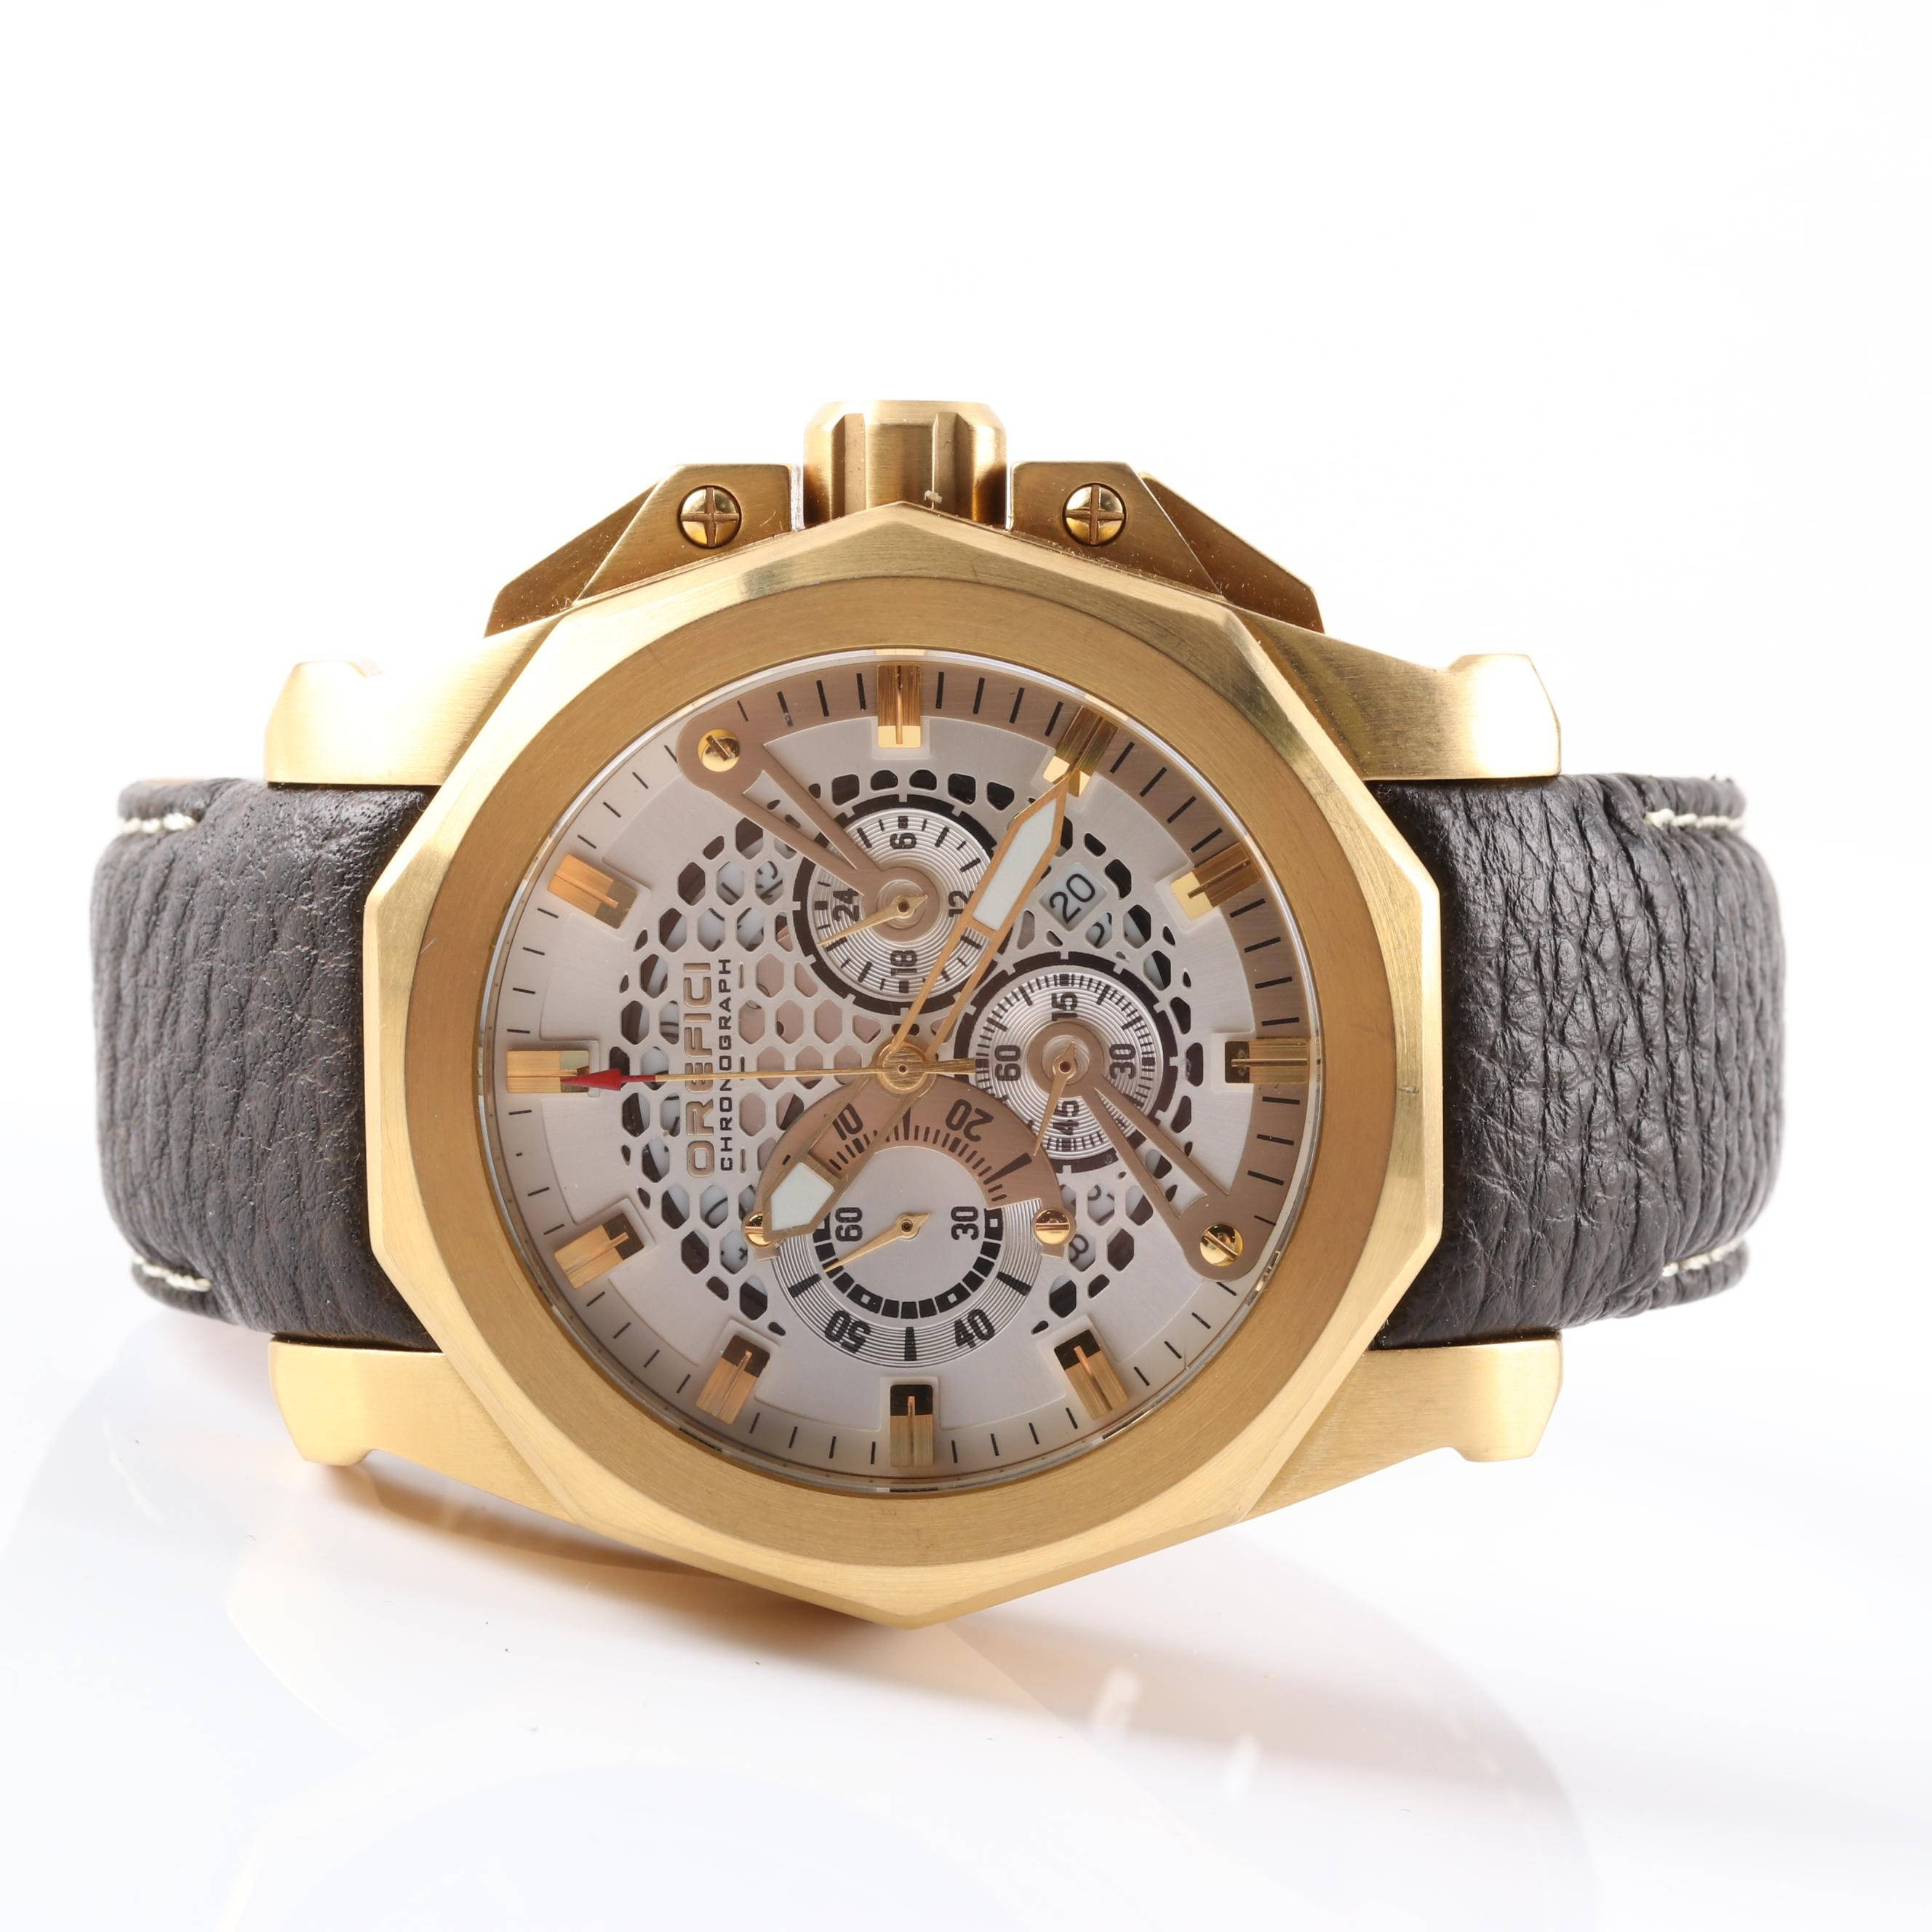 Orefici Gold Plated Stainless Steel Chronograph Wristwatch